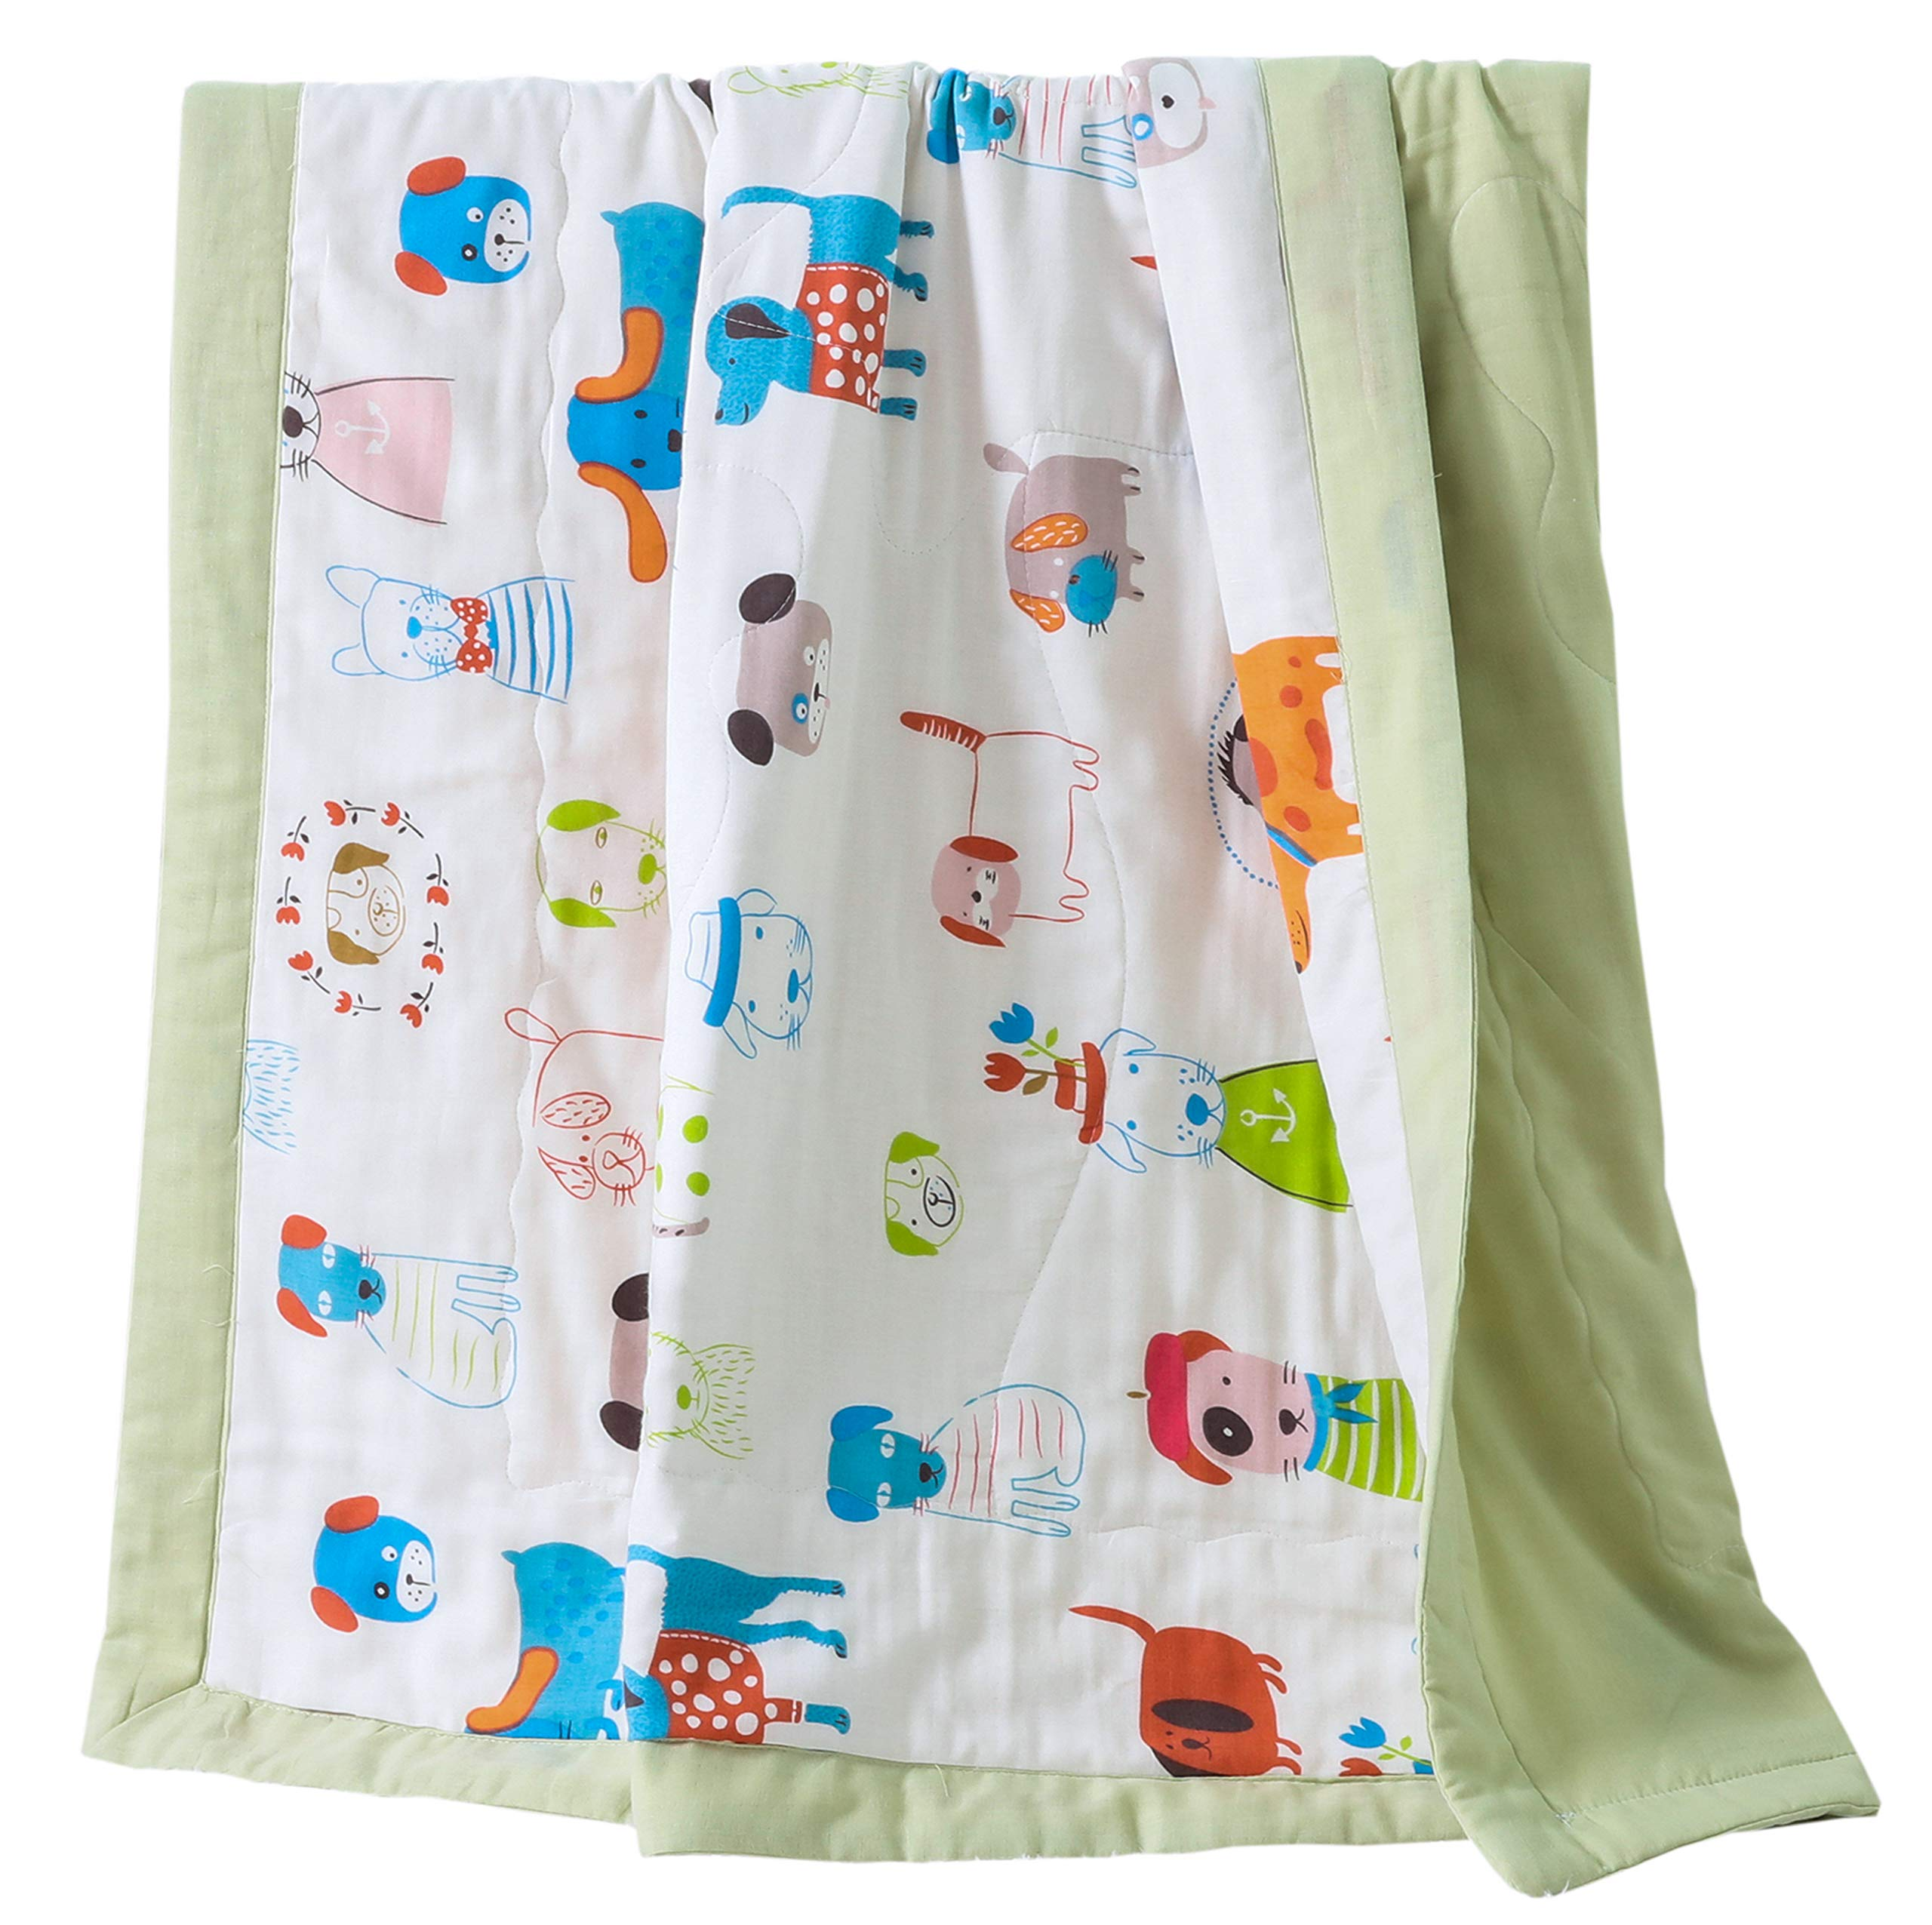 J-pinno Boys & Girls Cute Puppy Dogs Muslin Quilt Comforter Bedding Coverlet, 100% Long Staple Cotton, Throw Blanket Twin/Full for Kid's Bedroom Decoration Gift (Twin 59'' X 78'', puppy2) by J-pinno